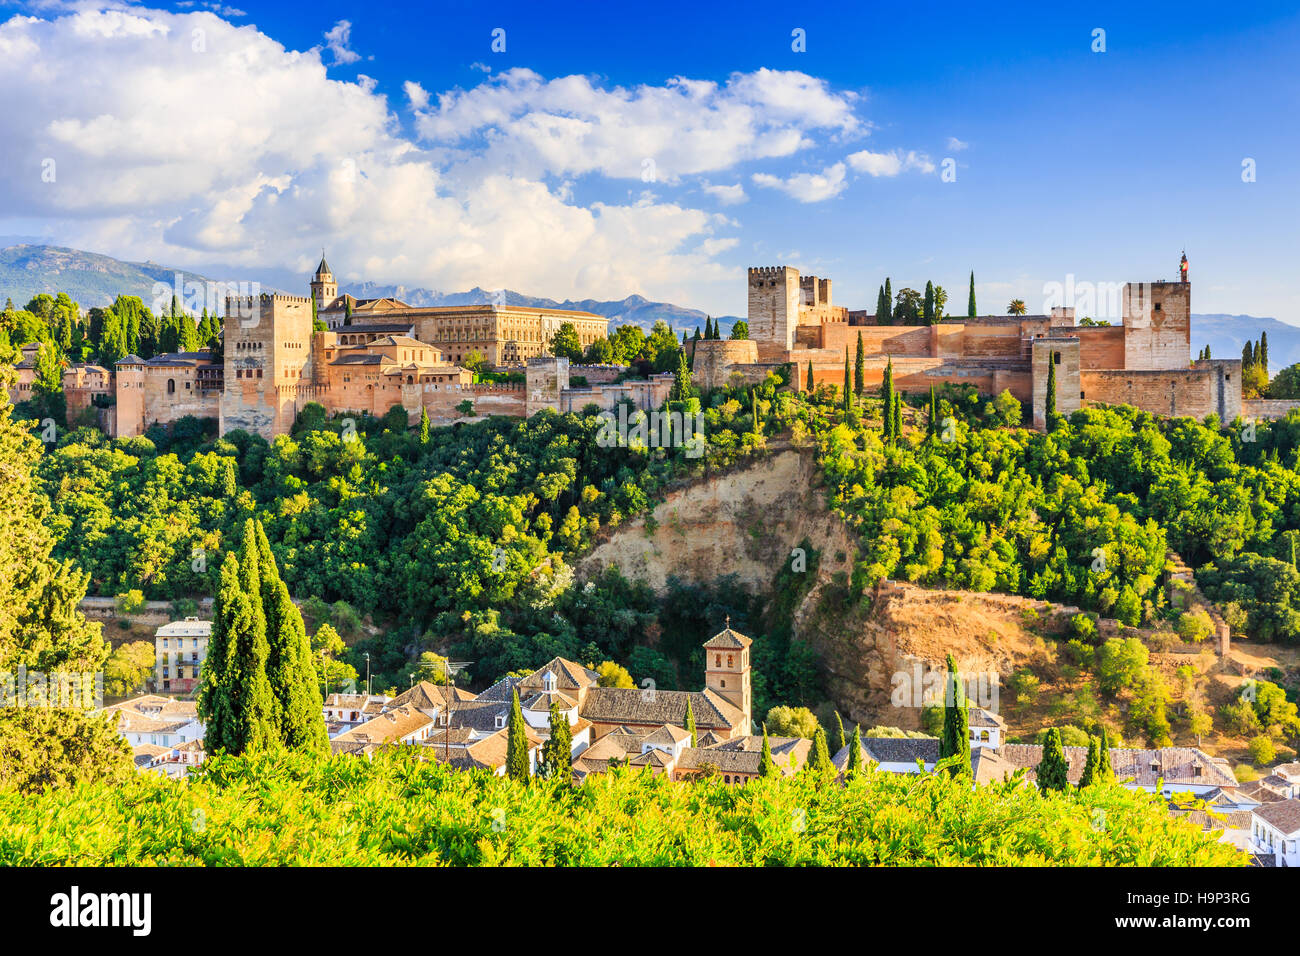 Alhambra of Granada, Spain. Alhambra fortress. - Stock Image